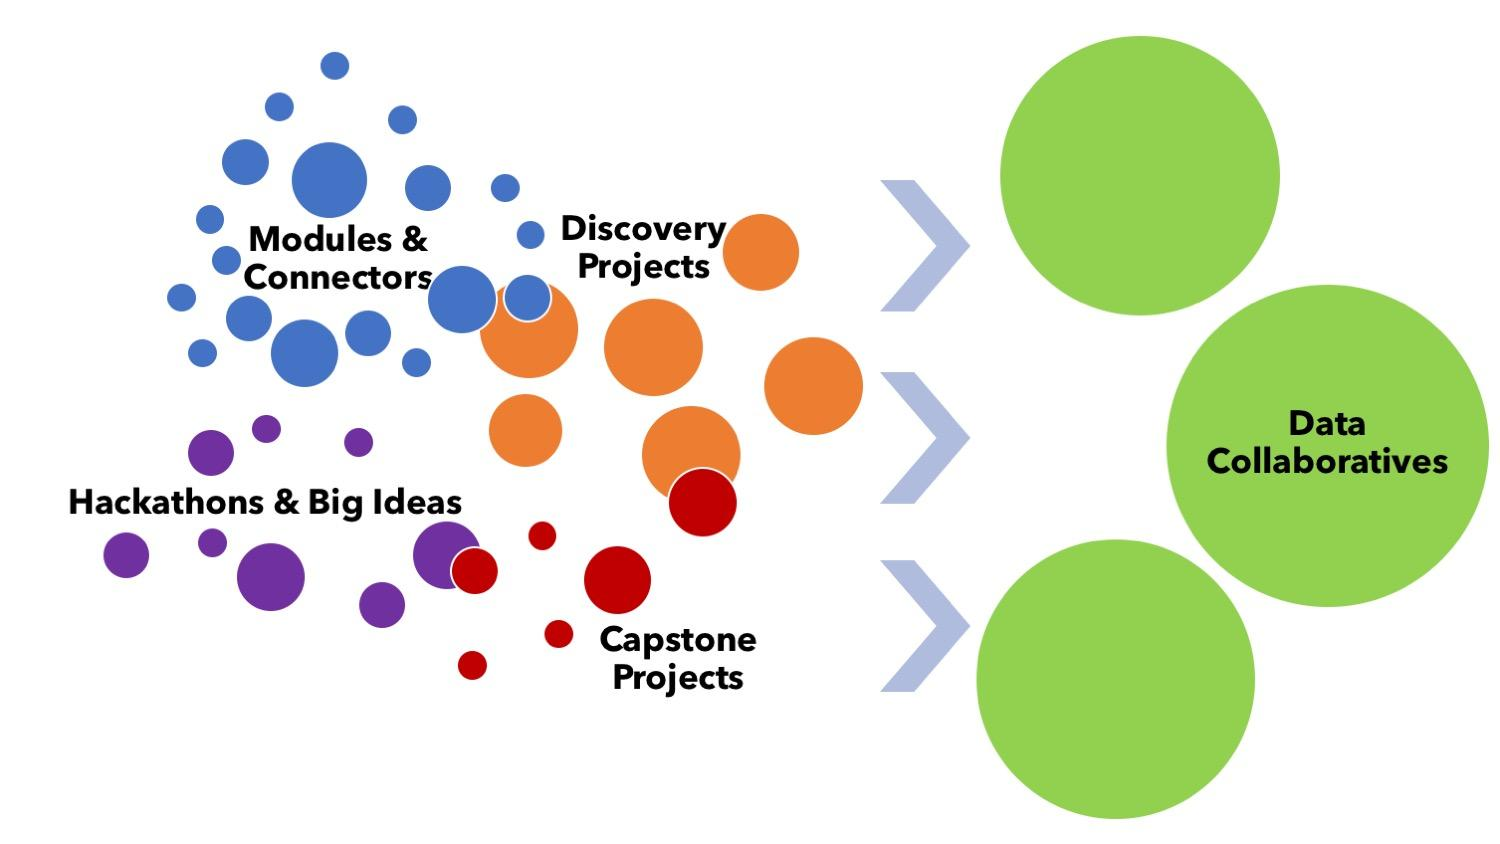 Data Collaboratives pipeline